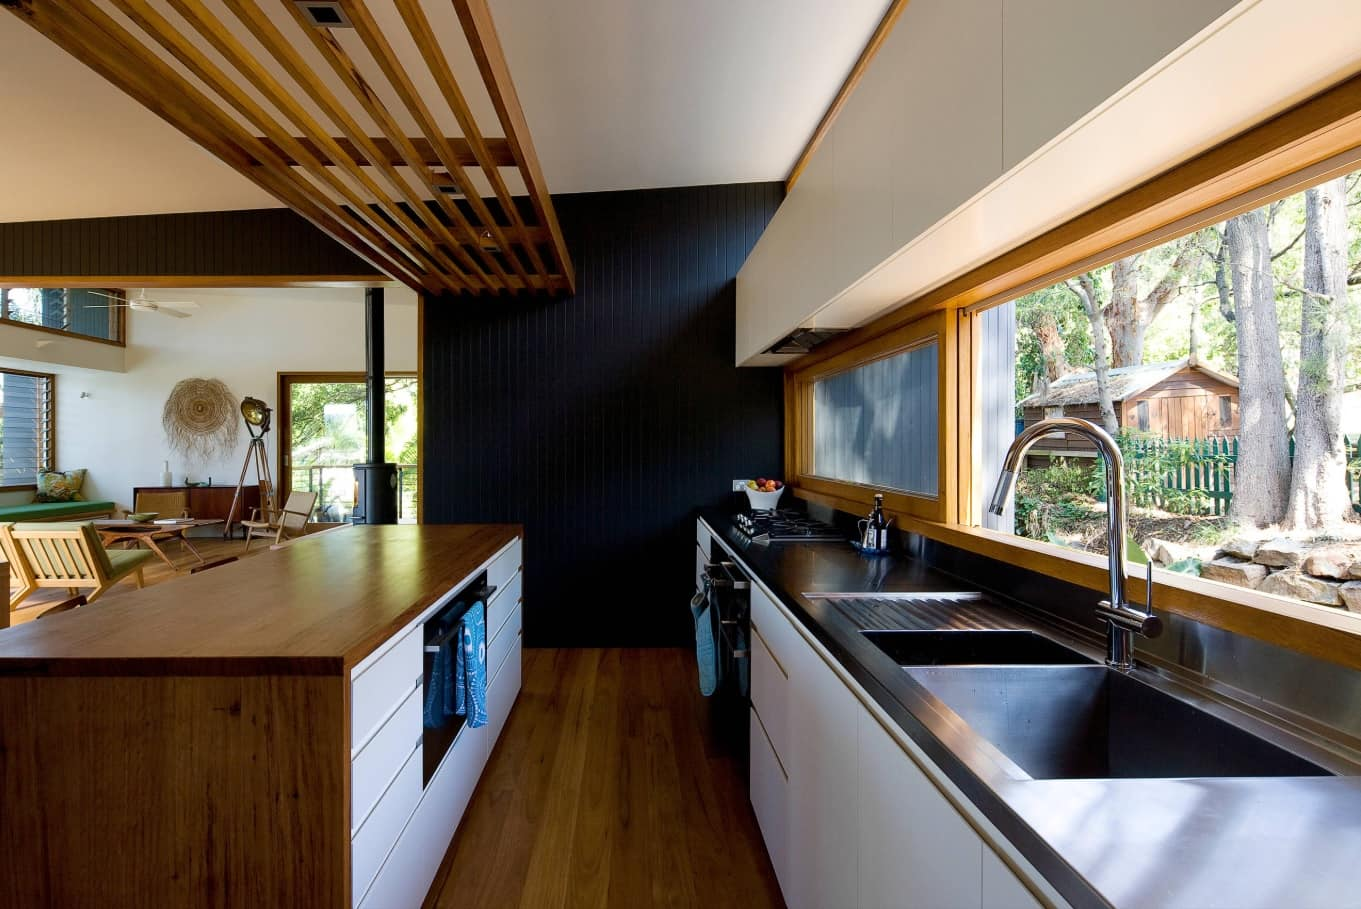 Wooden slatted panel above the kitchen island and the wooden window frame and floor